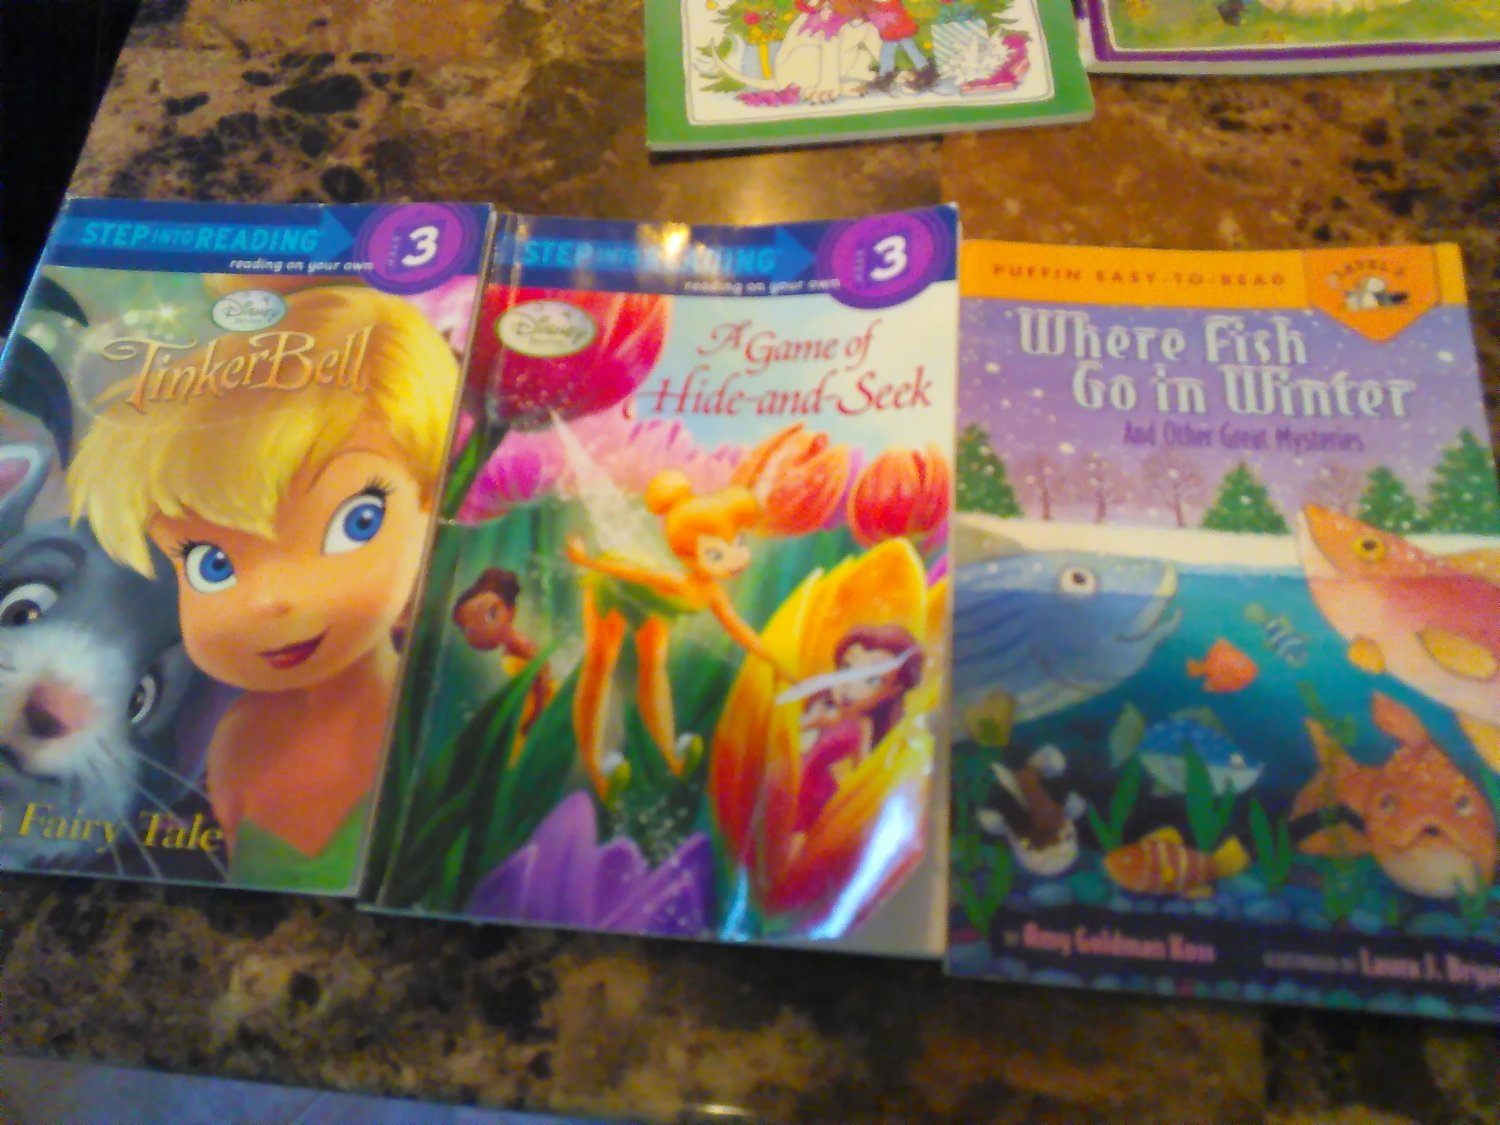 Tinker Bell; Hide and Seek Tinker Bell; Where do fish go in the winter (step 3 books)